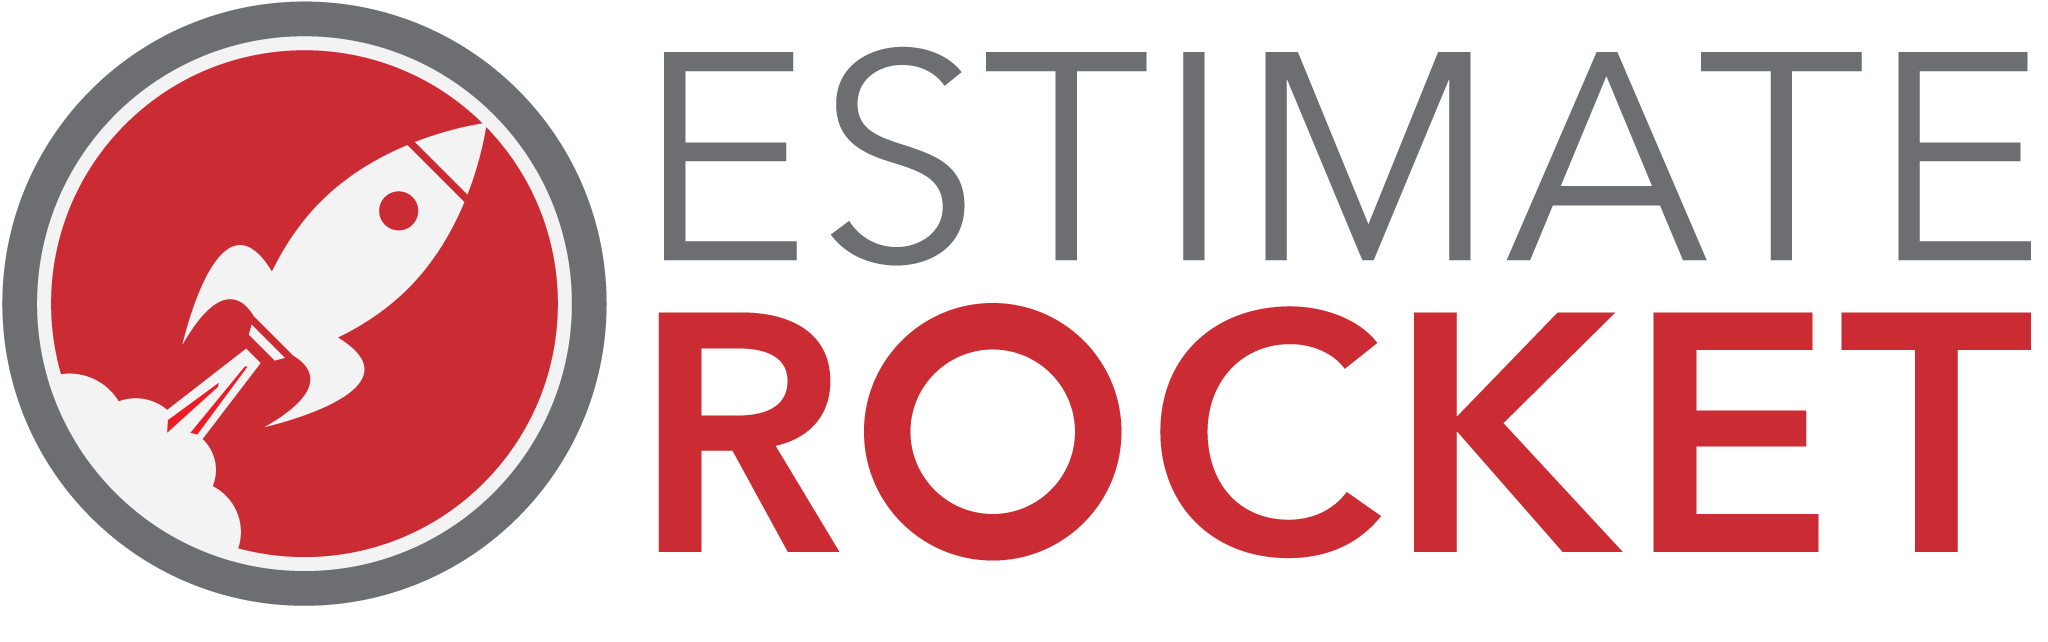 Estimate Rocket Logo